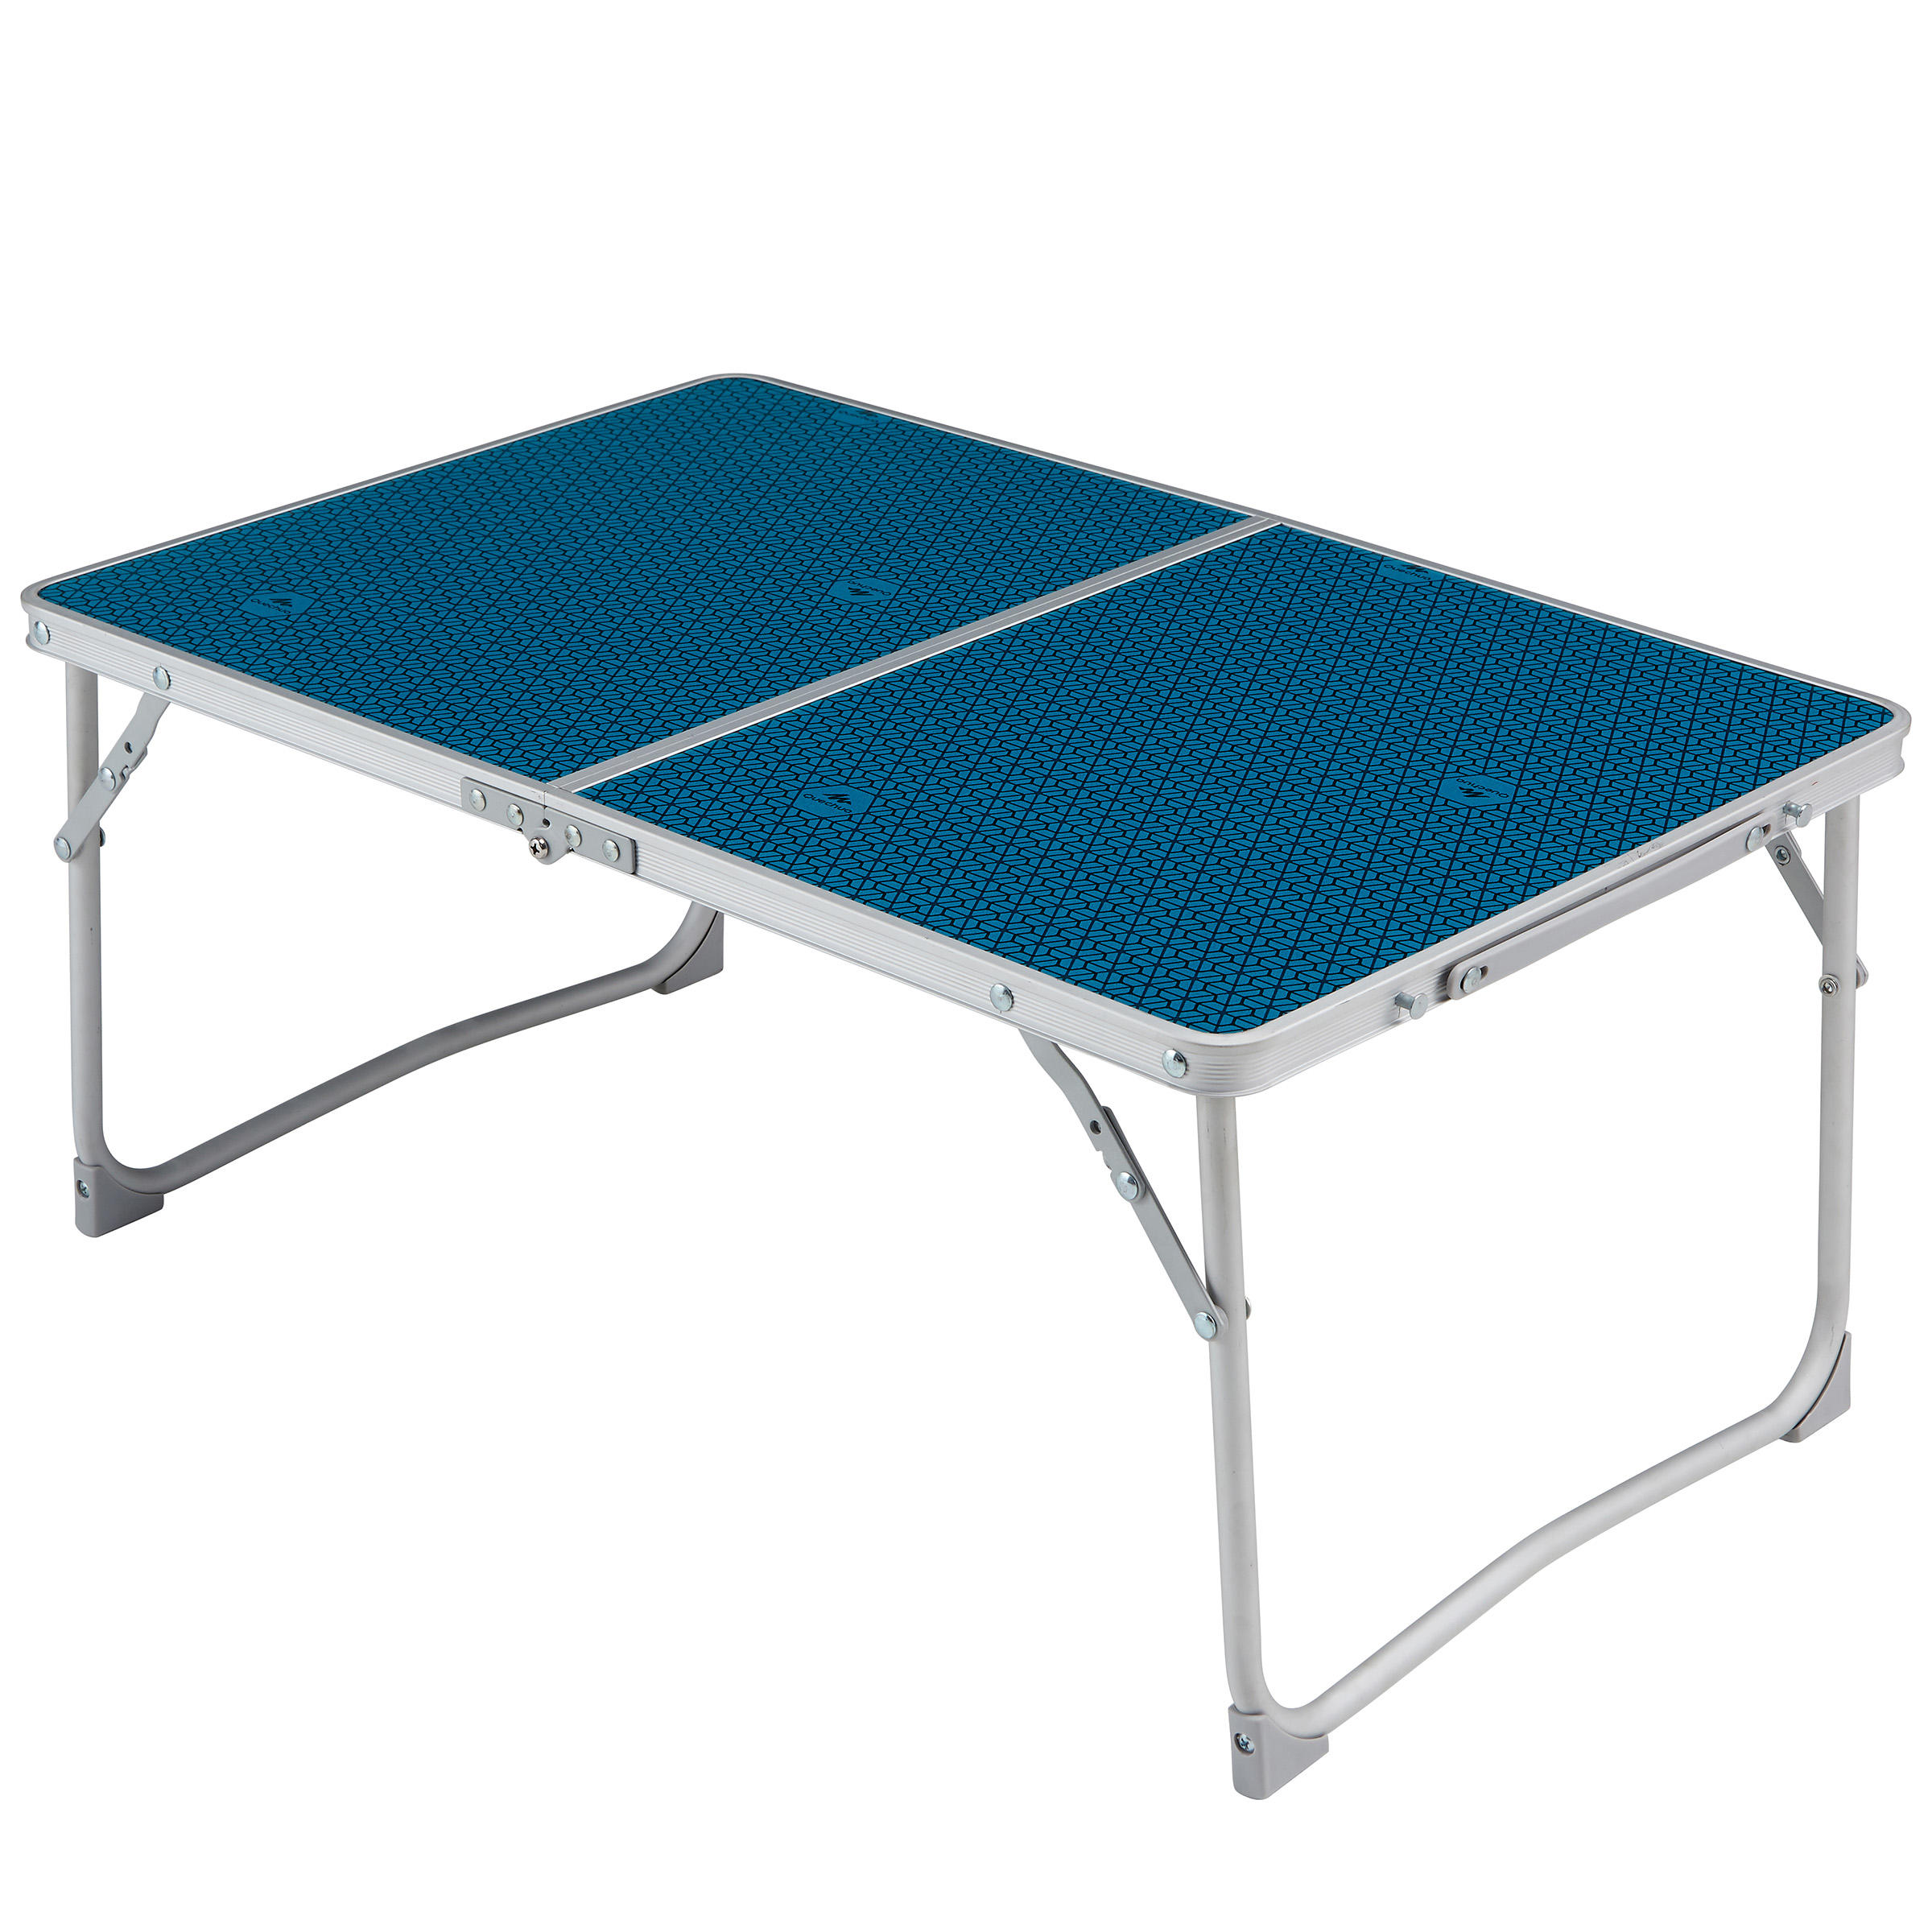 Camping Tables  Outdoor Folding Table  Decathlon